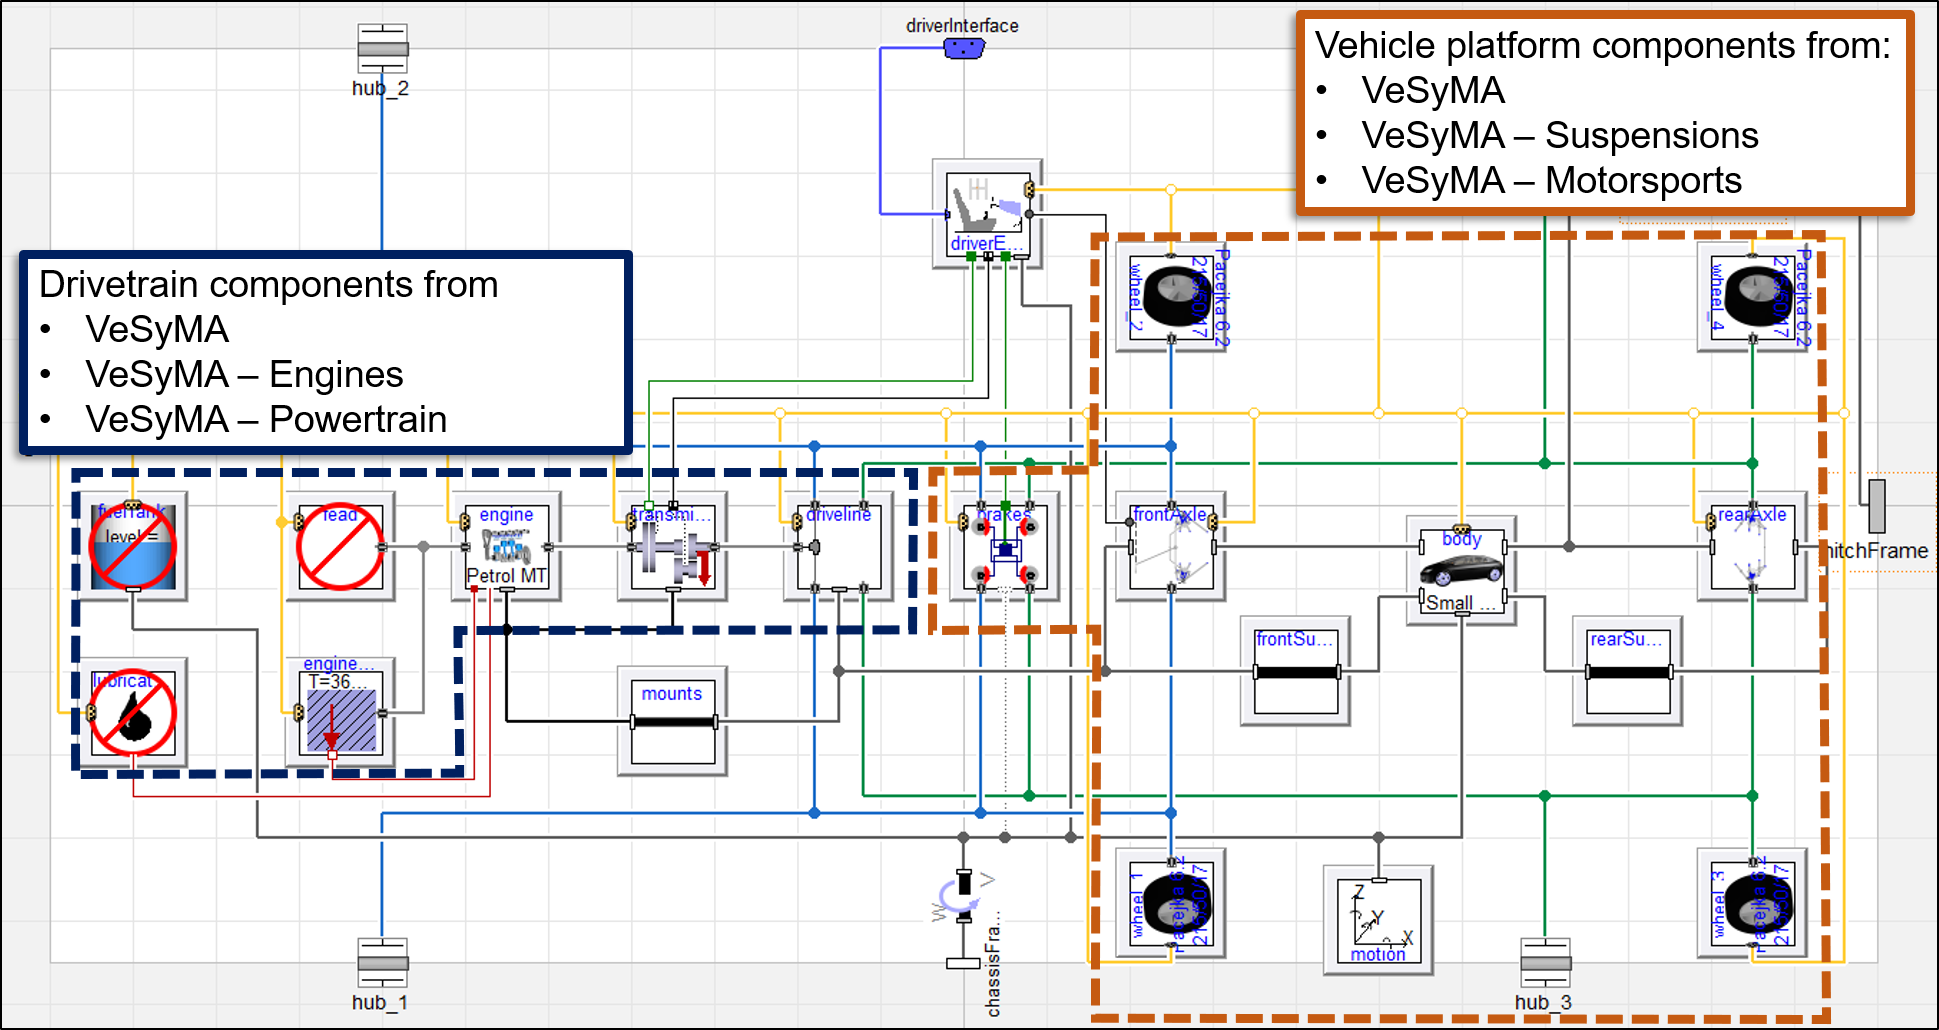 An example vehicle model built from a VeSyMA showing how the VeSyMA subject libraries can be deployed together